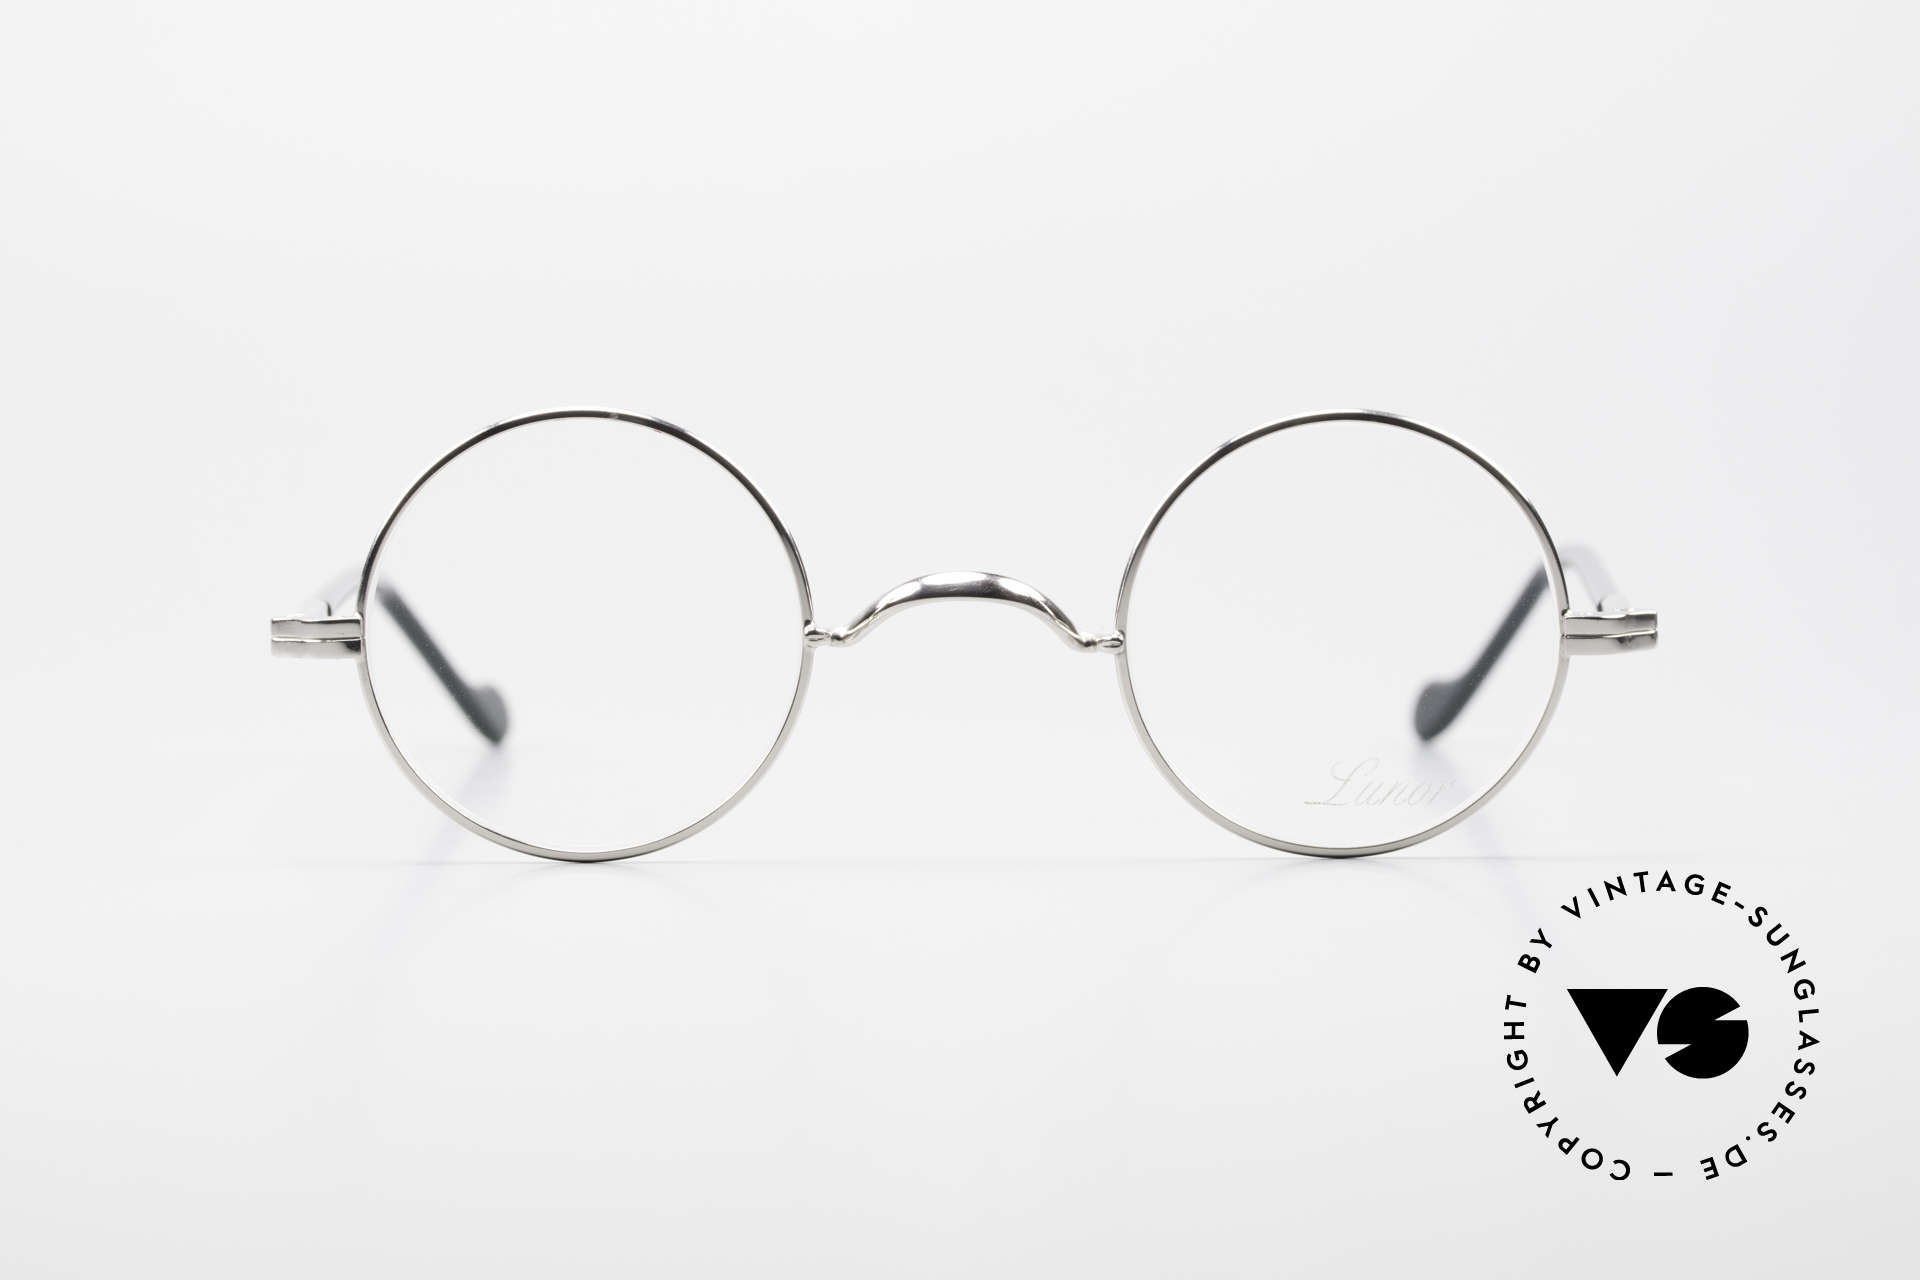 Lunor II A 12 Round Vintage Frame Platinum, combination: full rimmed metal frame & acetate temples, Made for Men and Women